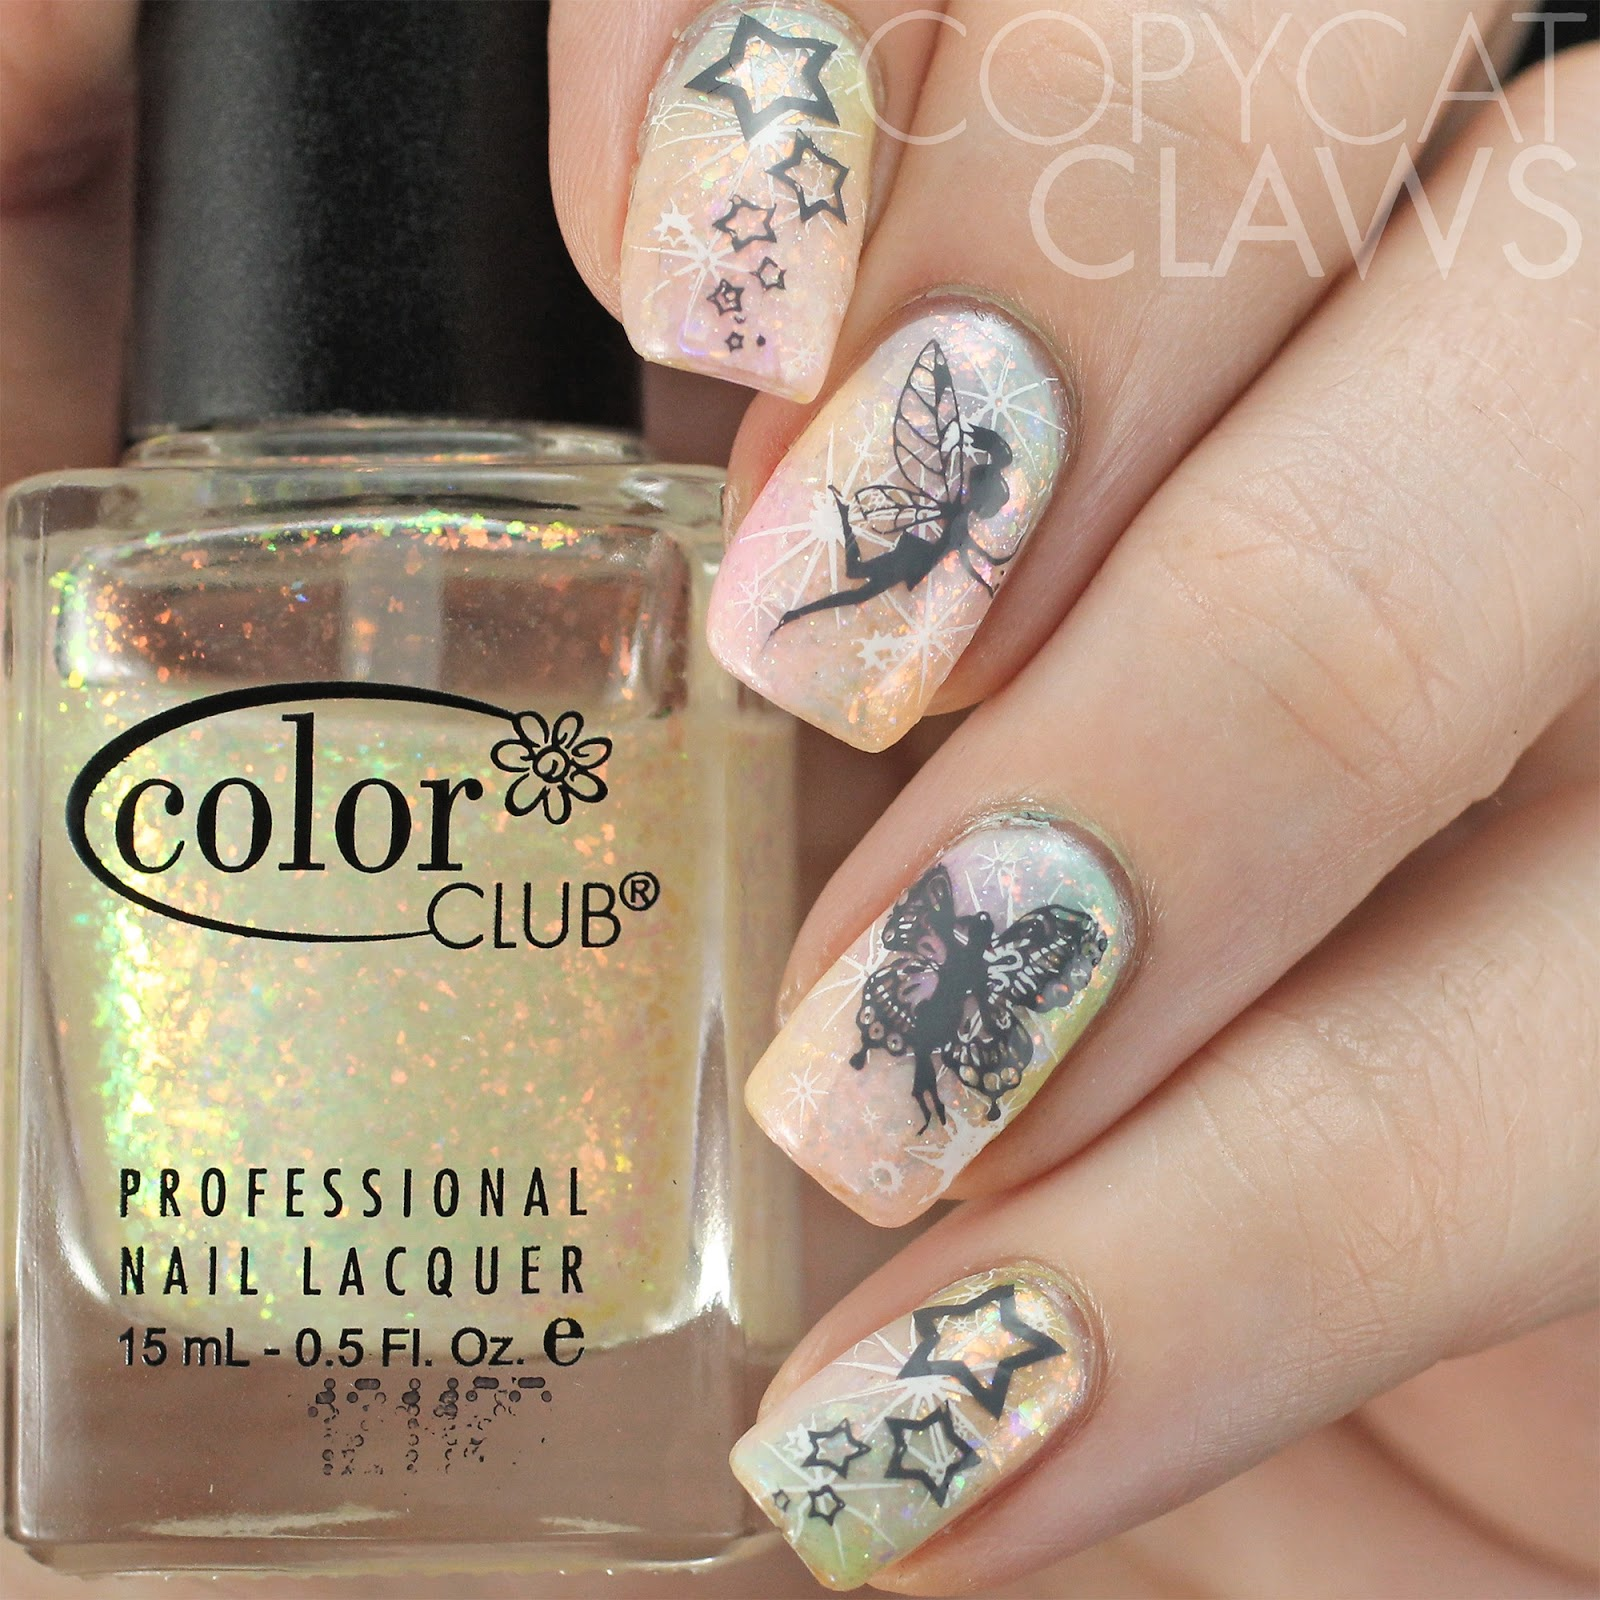 Copycat Claws The Digit Al Dozen Does Whimsy Fairy Nail Stamping